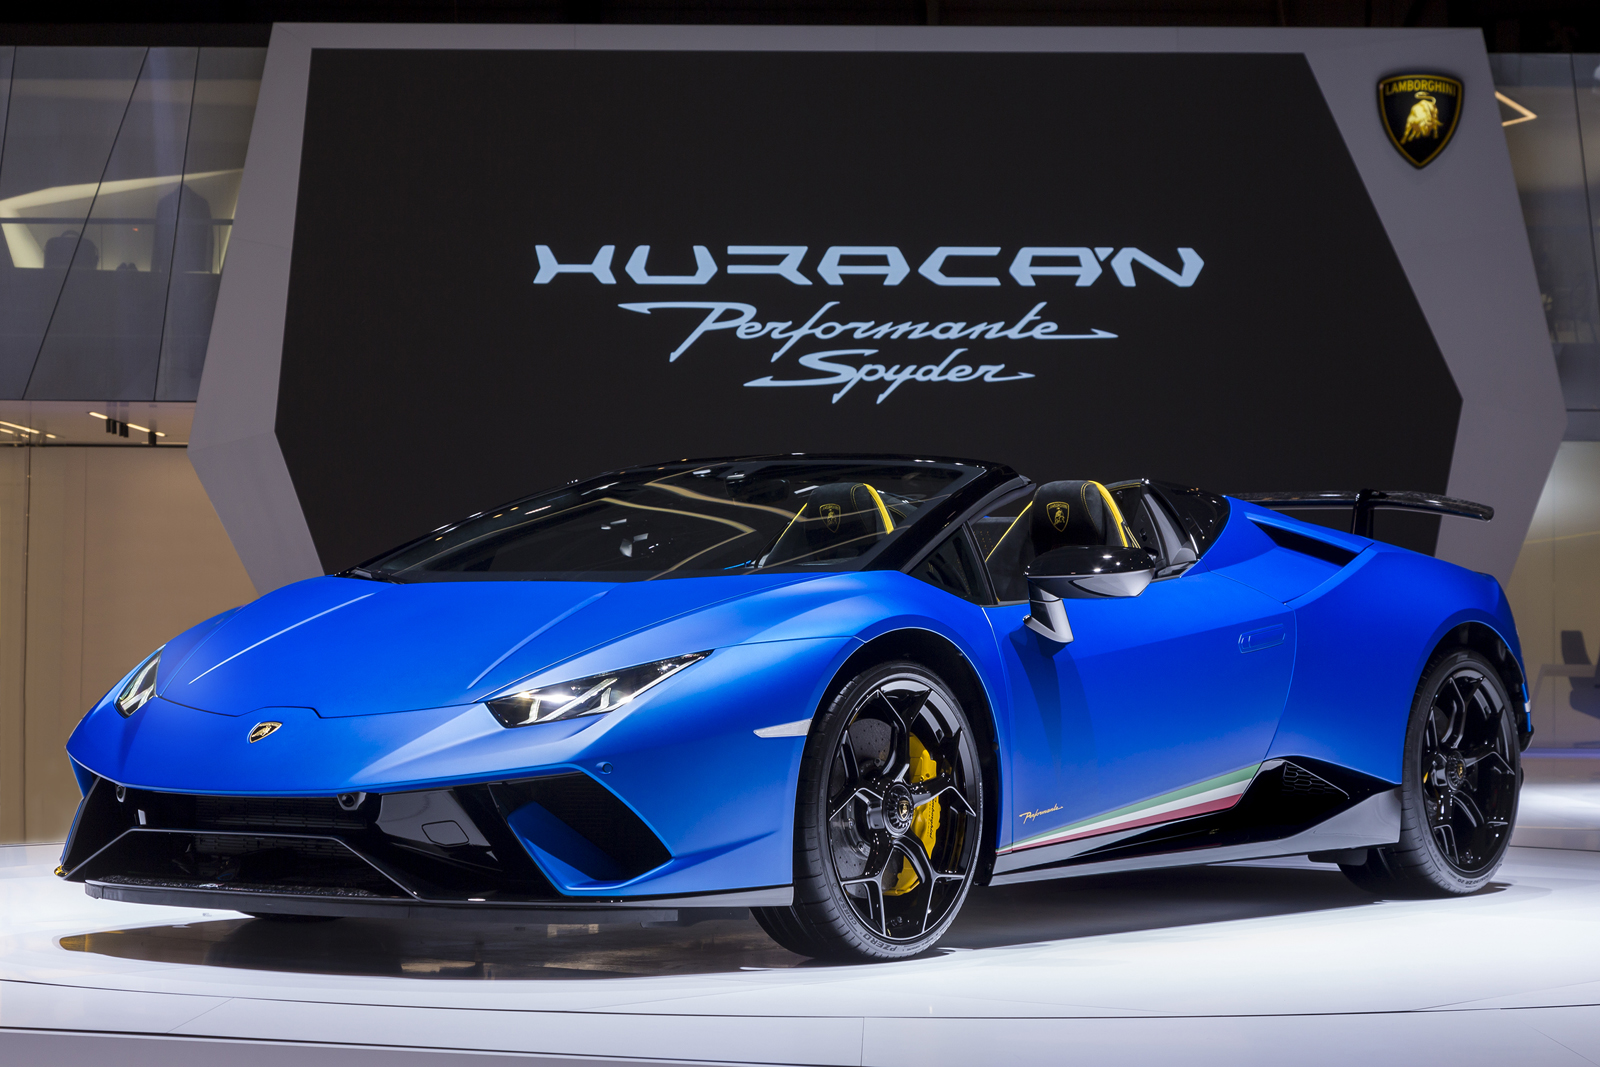 Lamborghini Huracan Performante Spyder Is One Aggressive Convertible